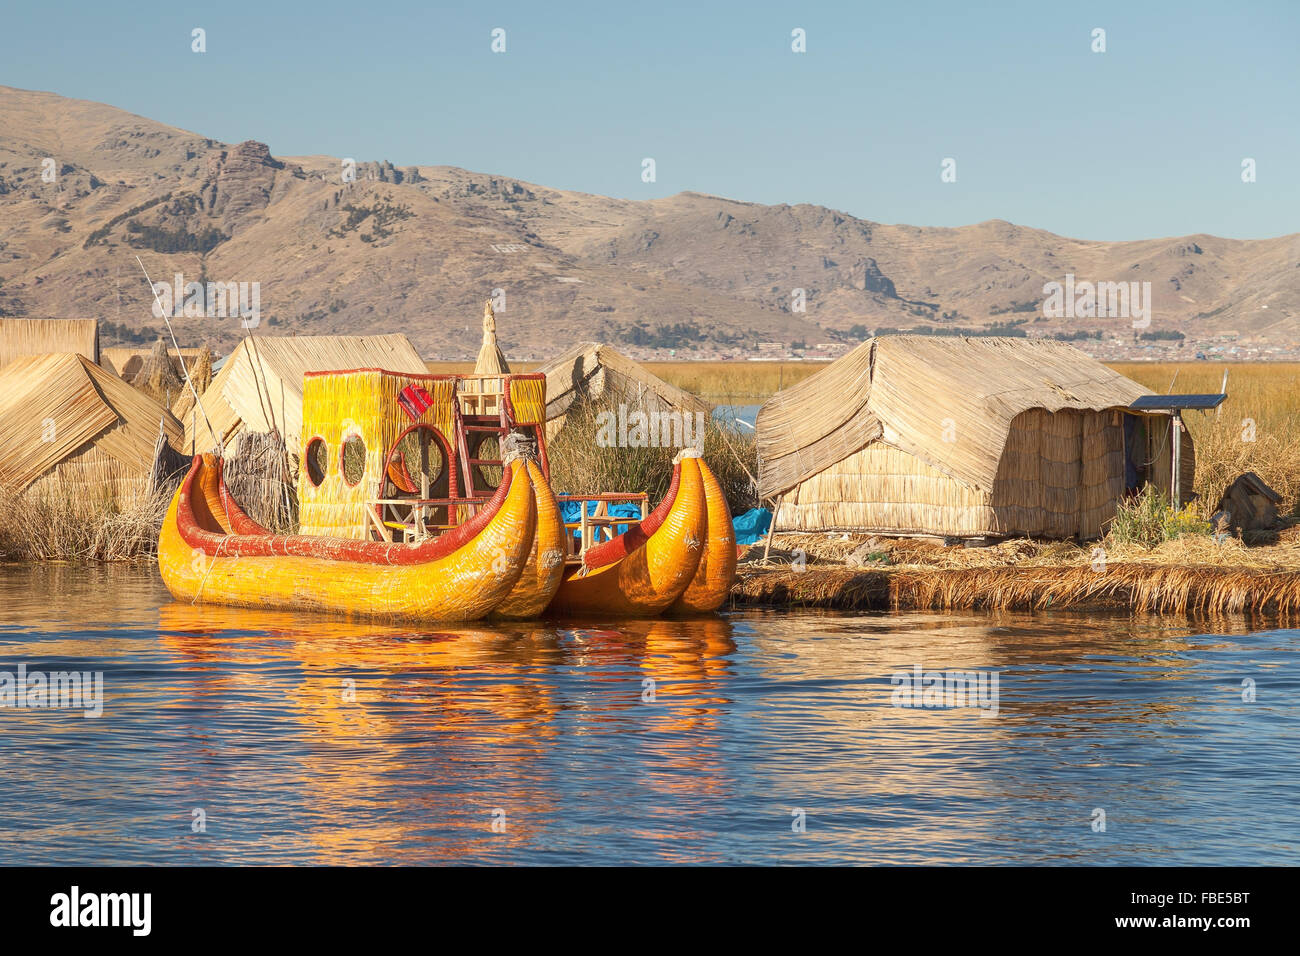 Reed boat on Island of Uros. Those are floating islands on lake Titicaca located between Peru and Bolivia. Colorful - Stock Image